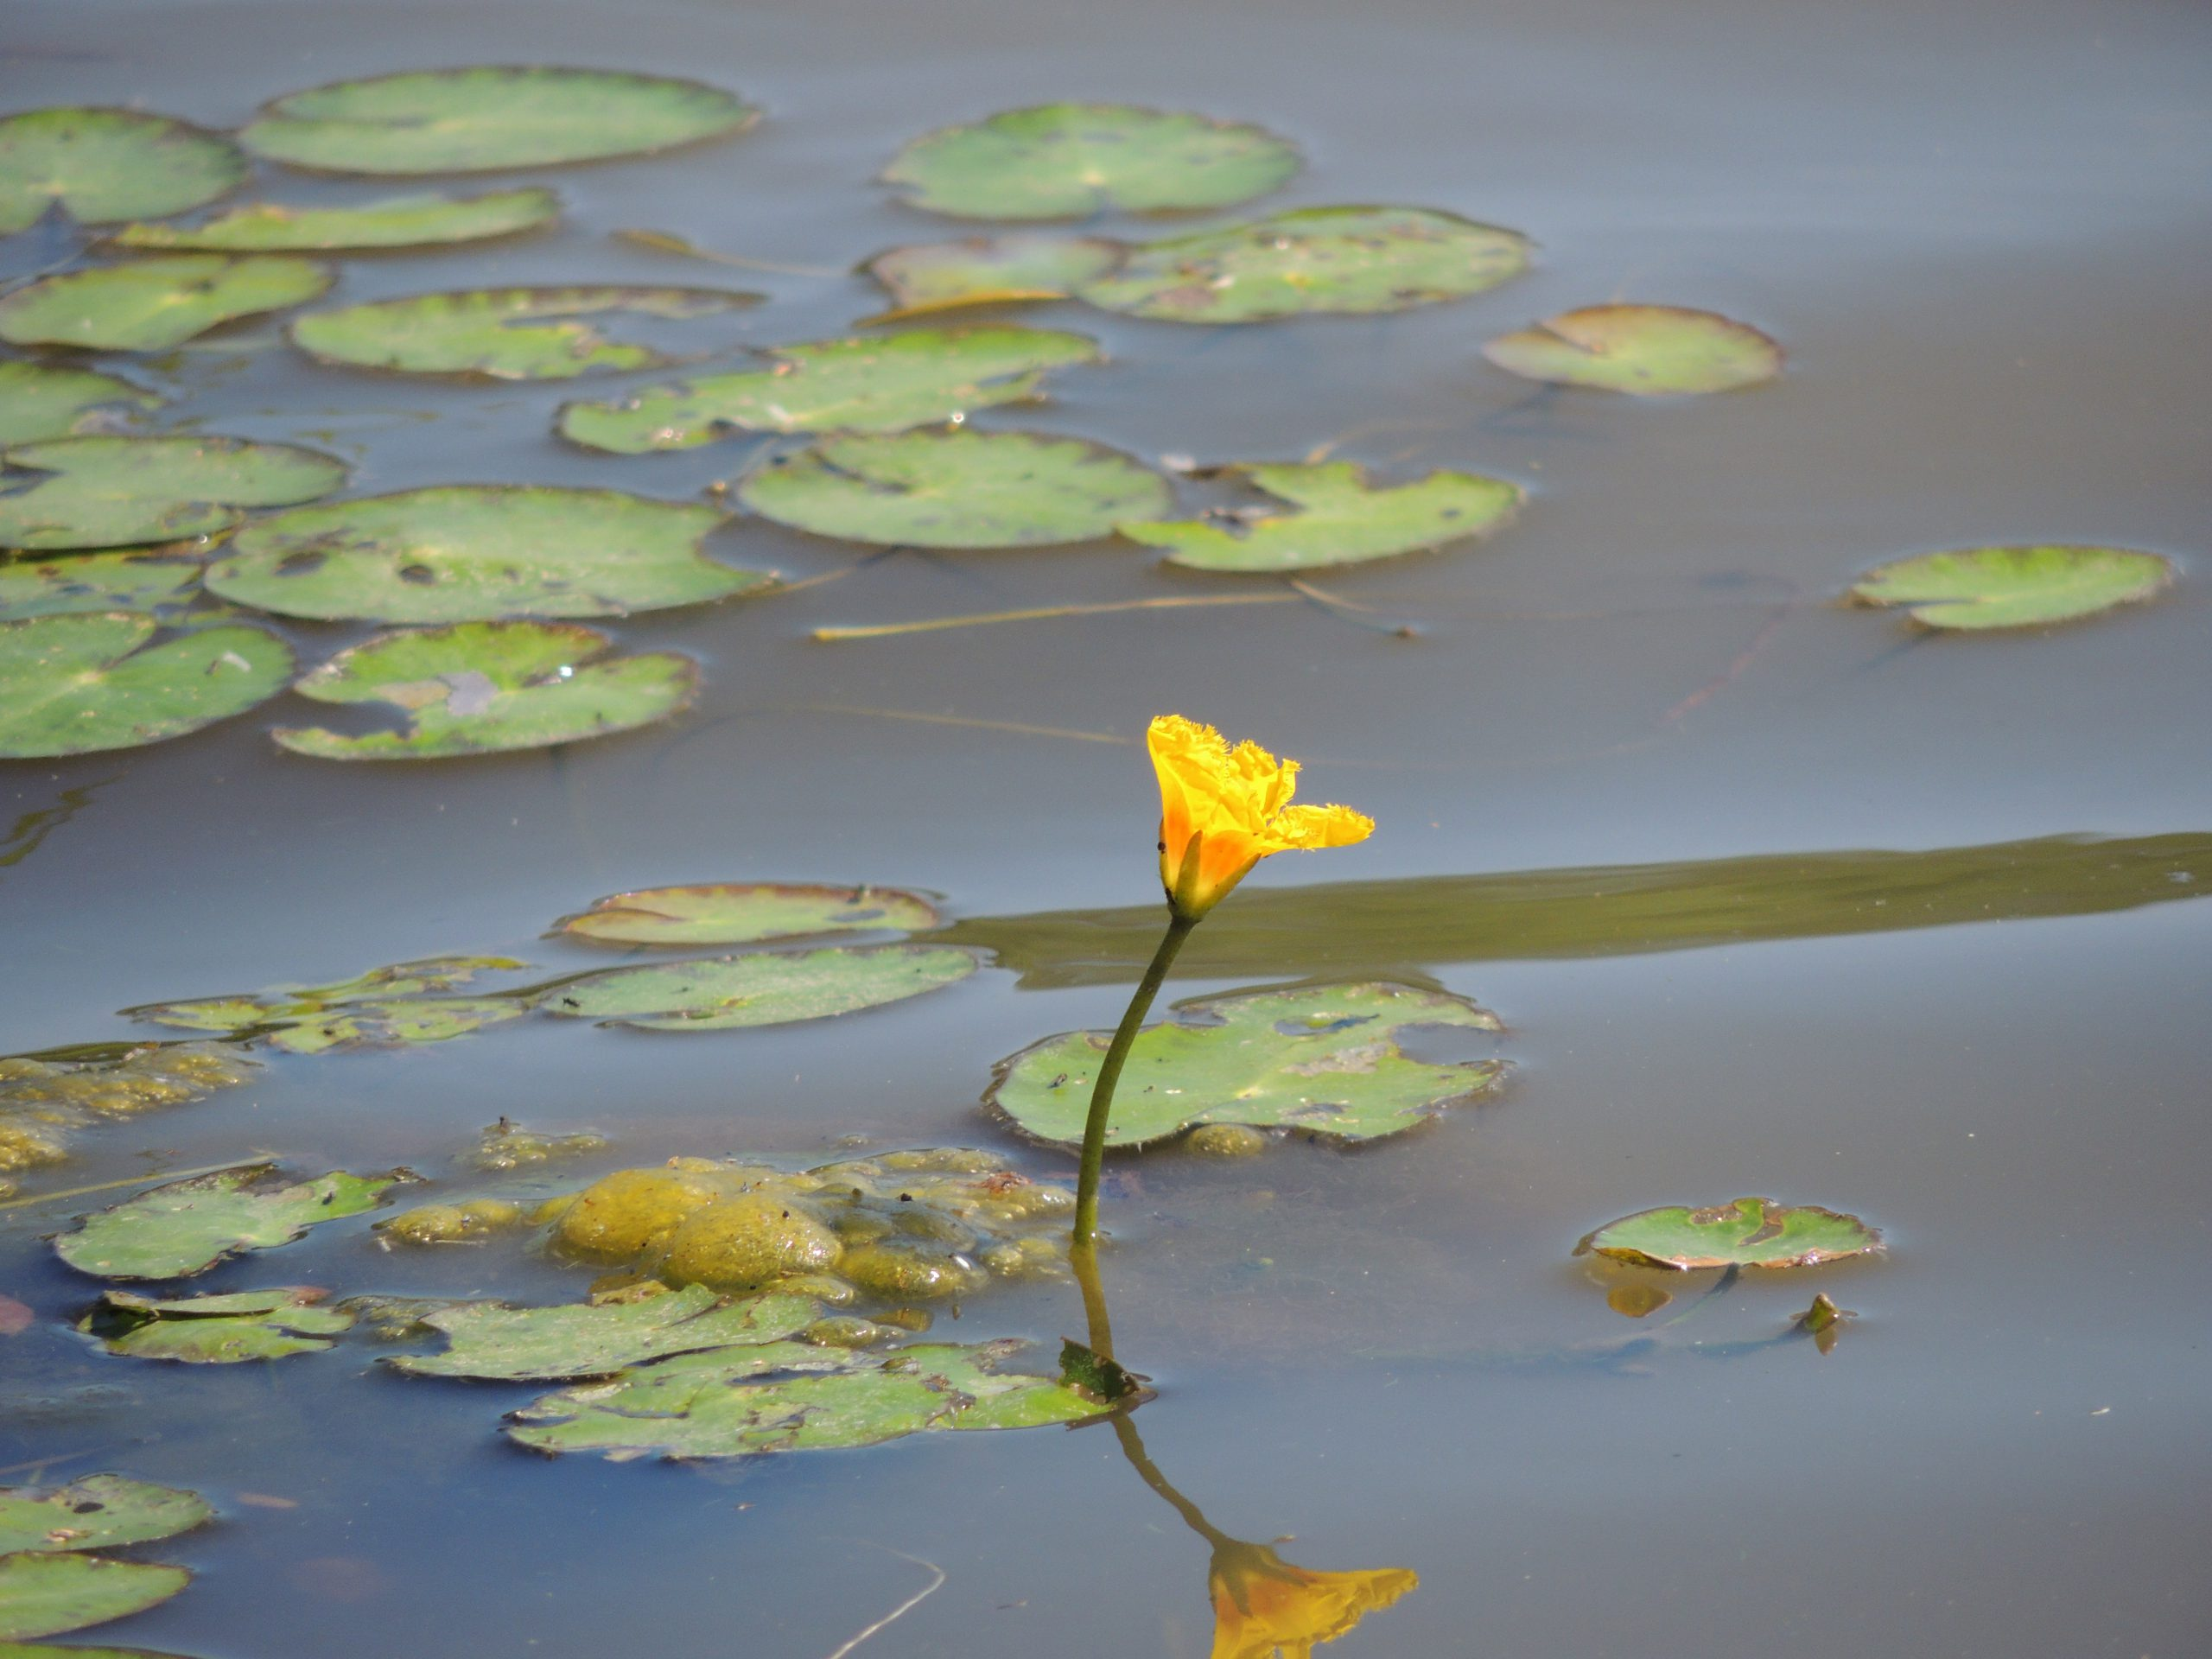 yellow floating heart leaves and flower